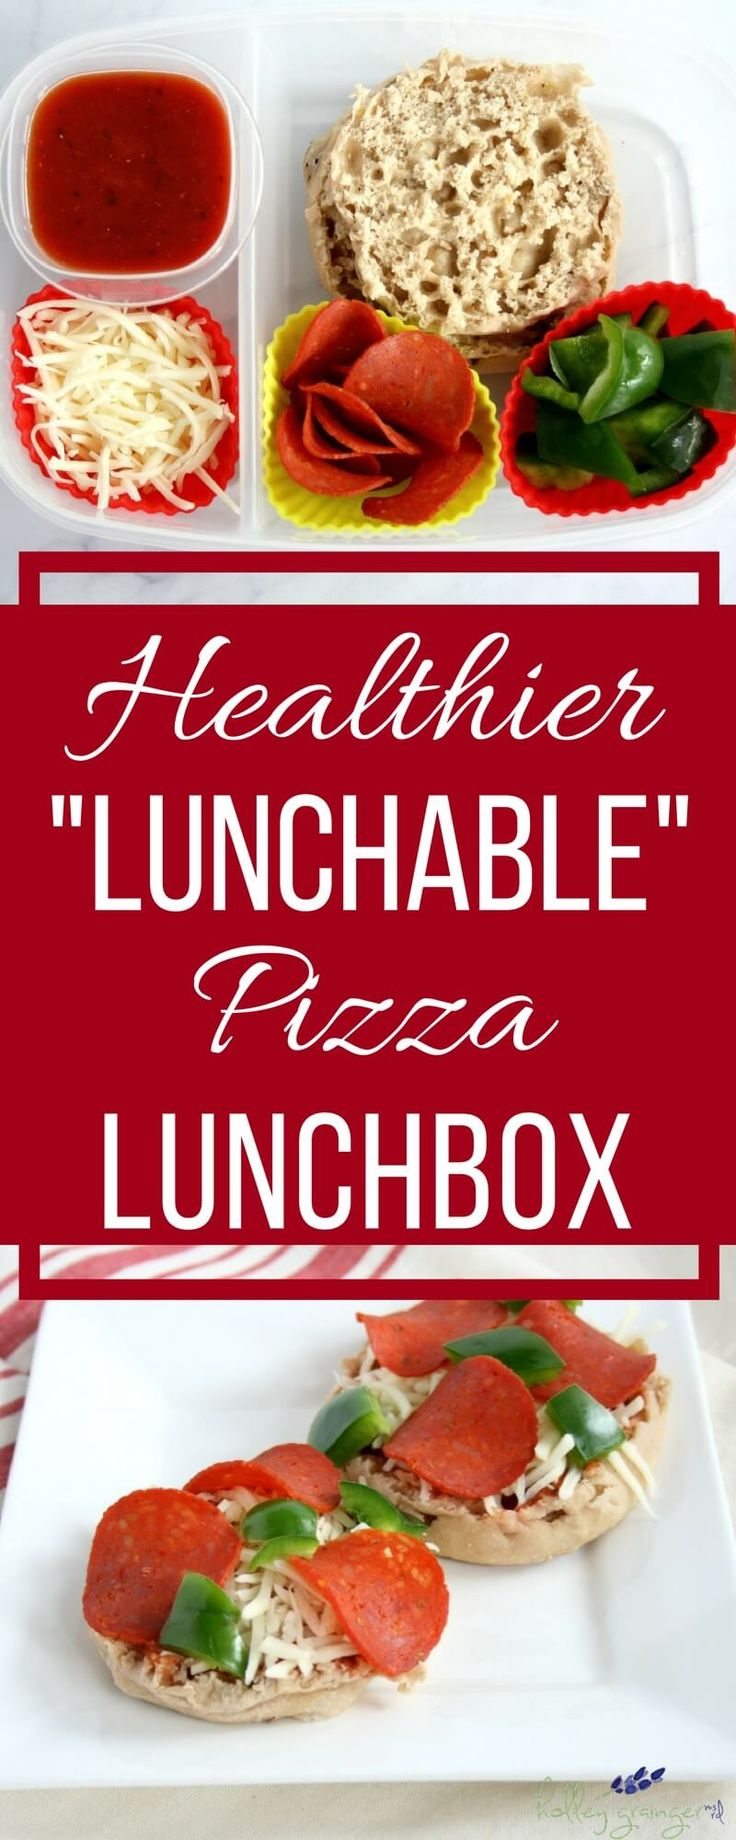 """This healthier """"lunchable"""" pizza lunchbox is just as easy and fun as the classic pre-made lunch but with better nutrition thanks to some simple and fresh swaps. via @holleygrainger"""